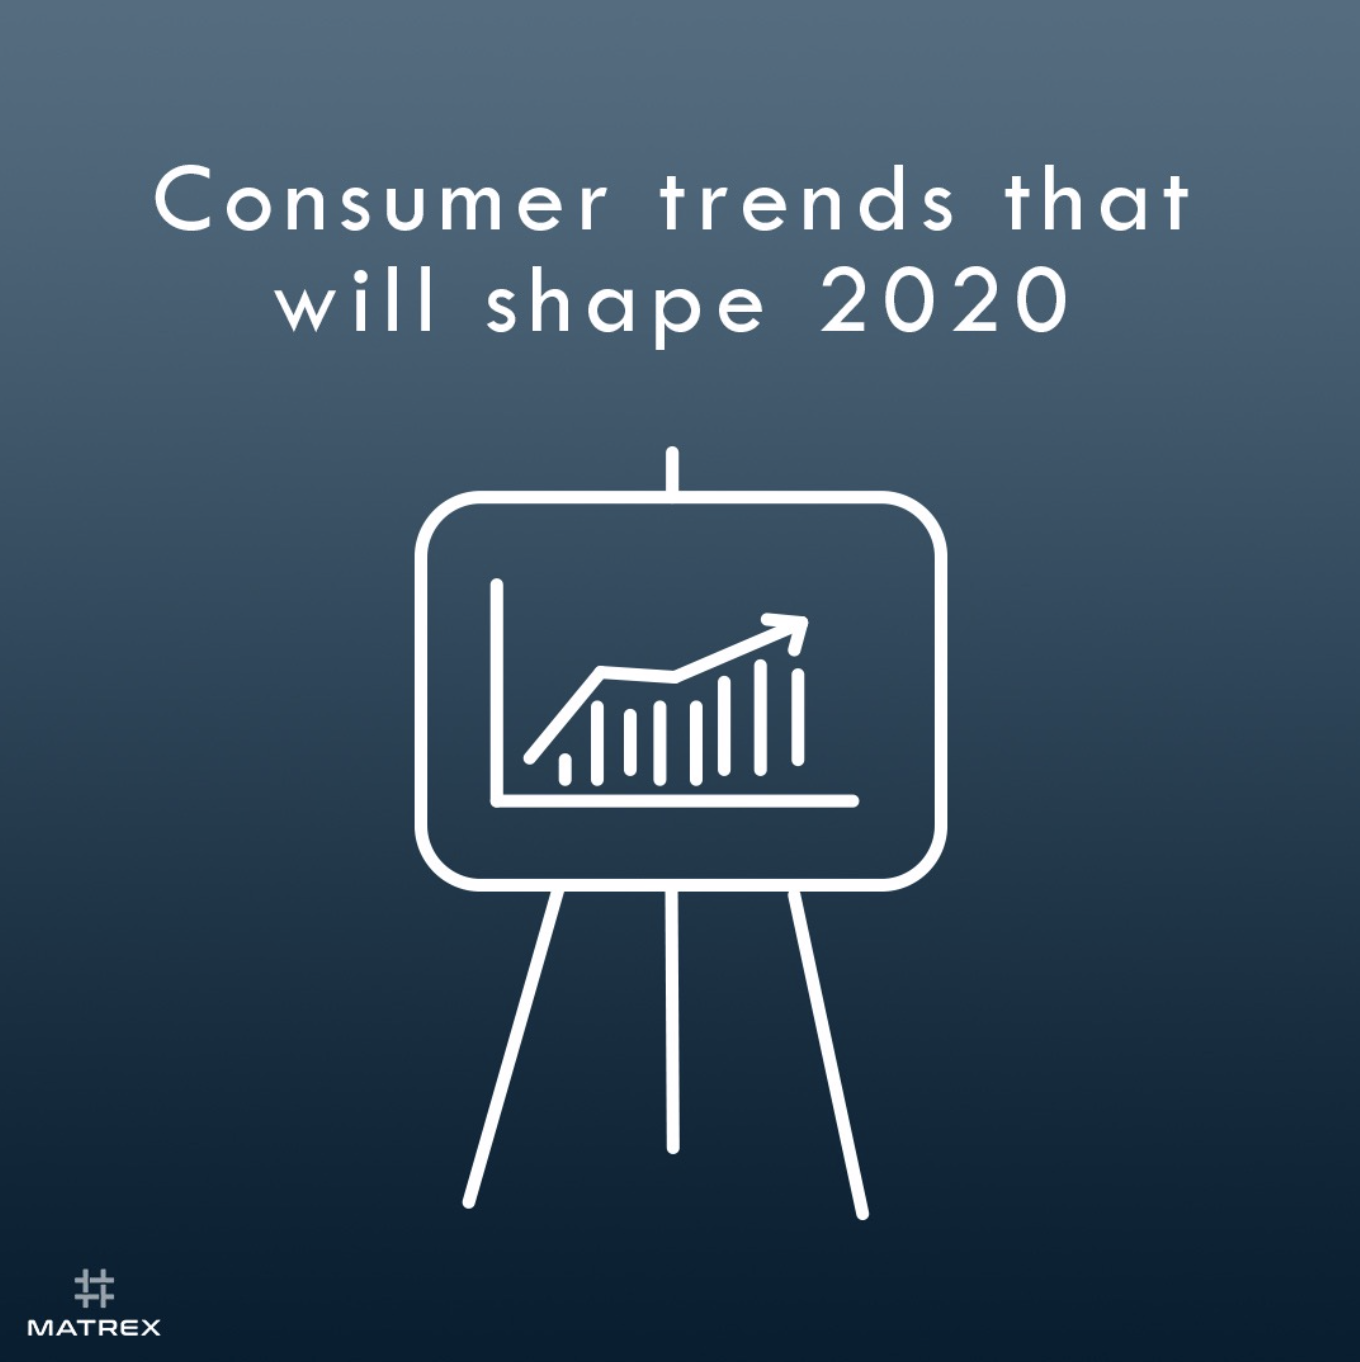 Beverage Industry Trends 2020.Consumer Trends That Will Shape 2020 Matrex Blockchain